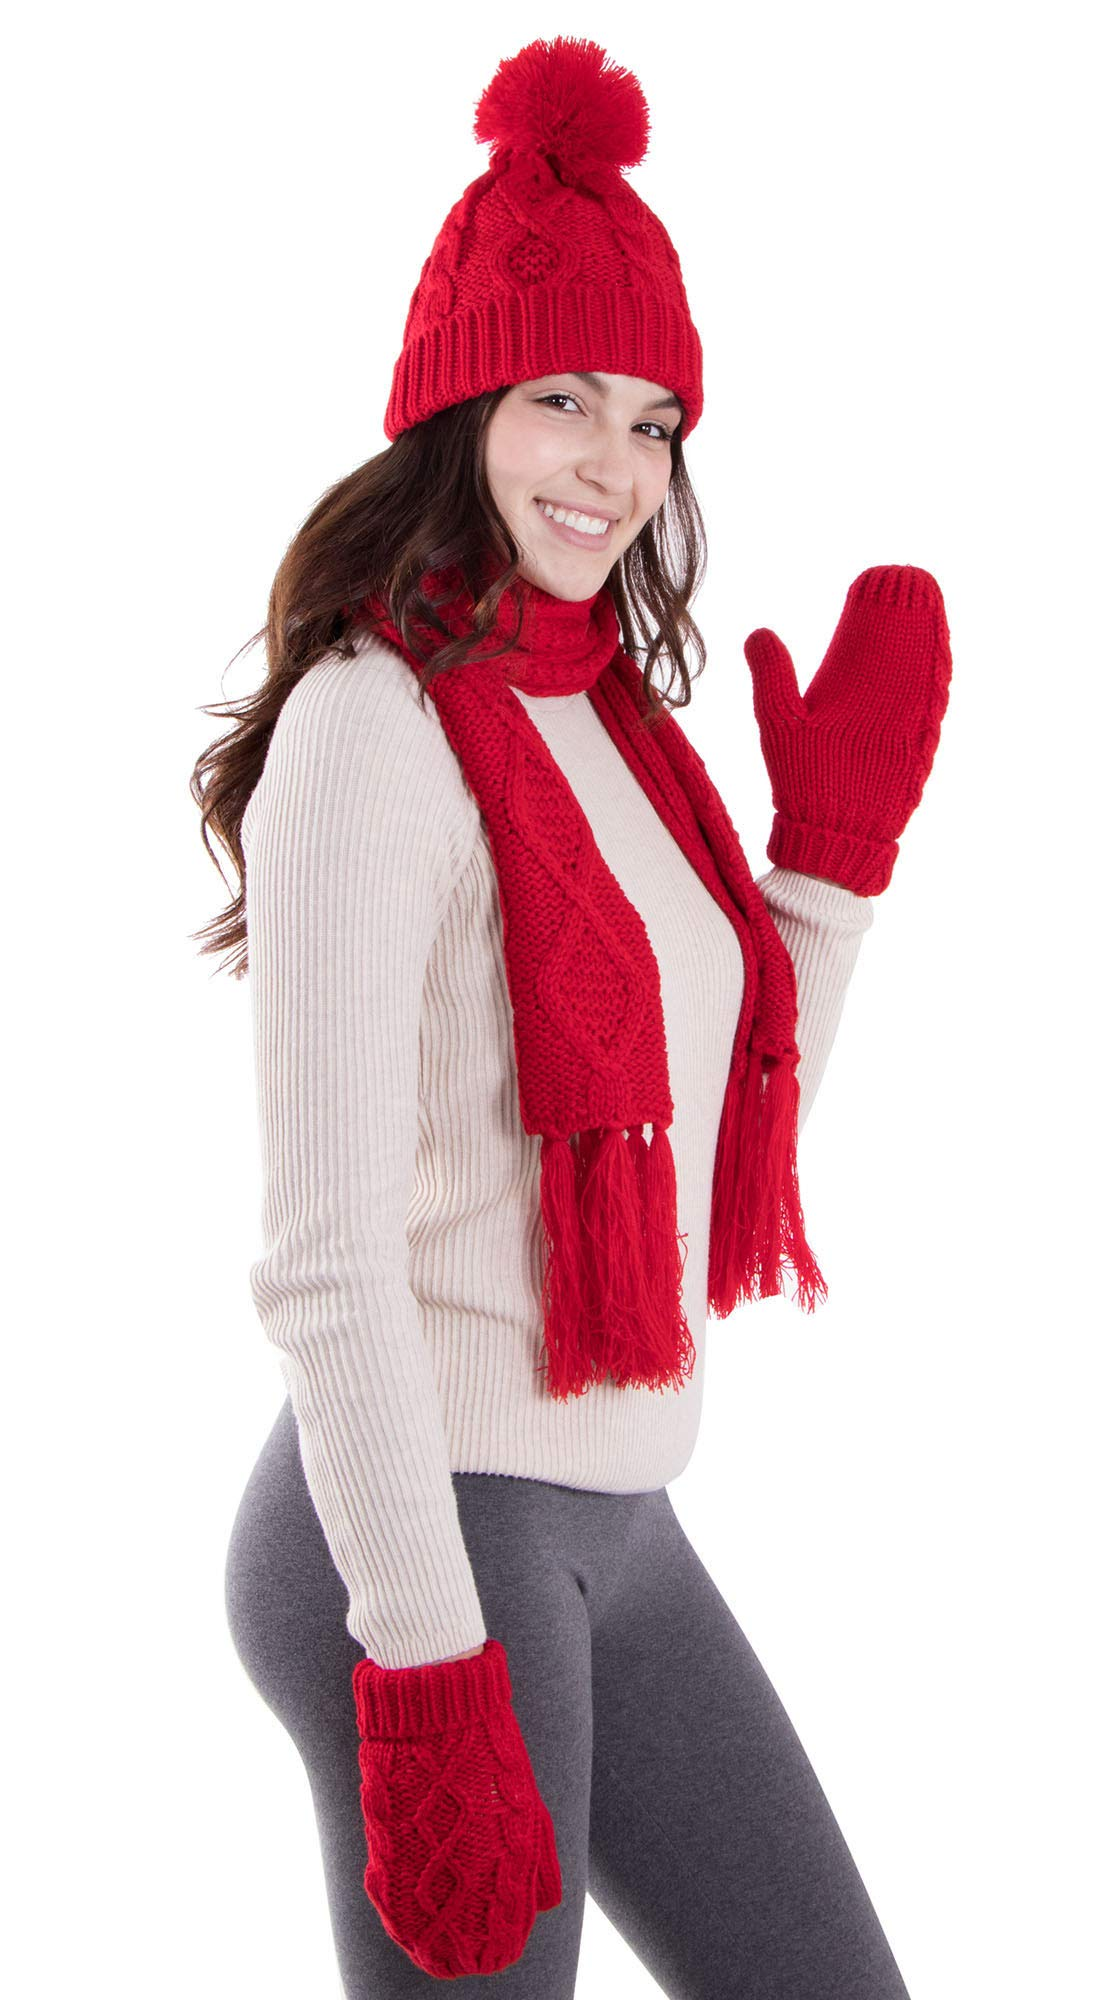 ANDORRA - 3 in 1 - Soft Warm Thick Cable Hat Scarf & Gloves Winter Set, Red by Andorra (Image #3)